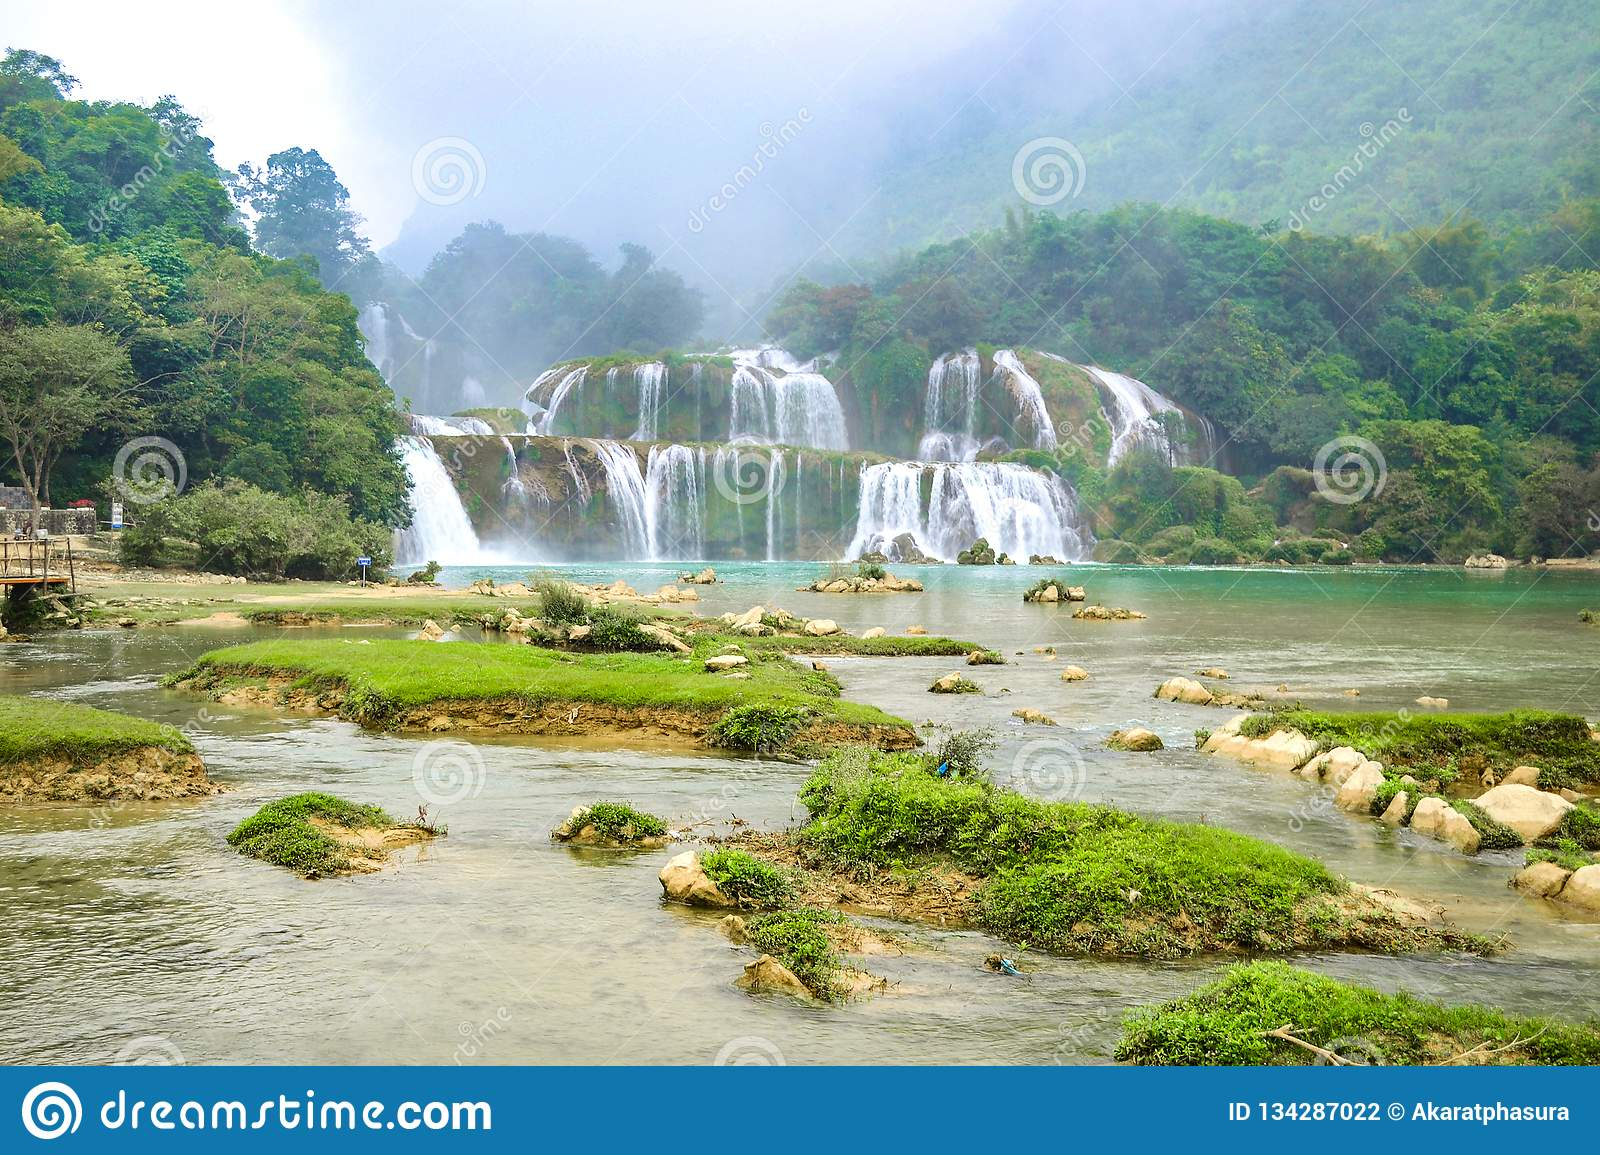 Ban Gioc Waterfall Or Detian Falls Vietnam S Best Known Waterfall Located In Cao Bang Border Near China Stock Photo Image Of Bestknown Border 134287022